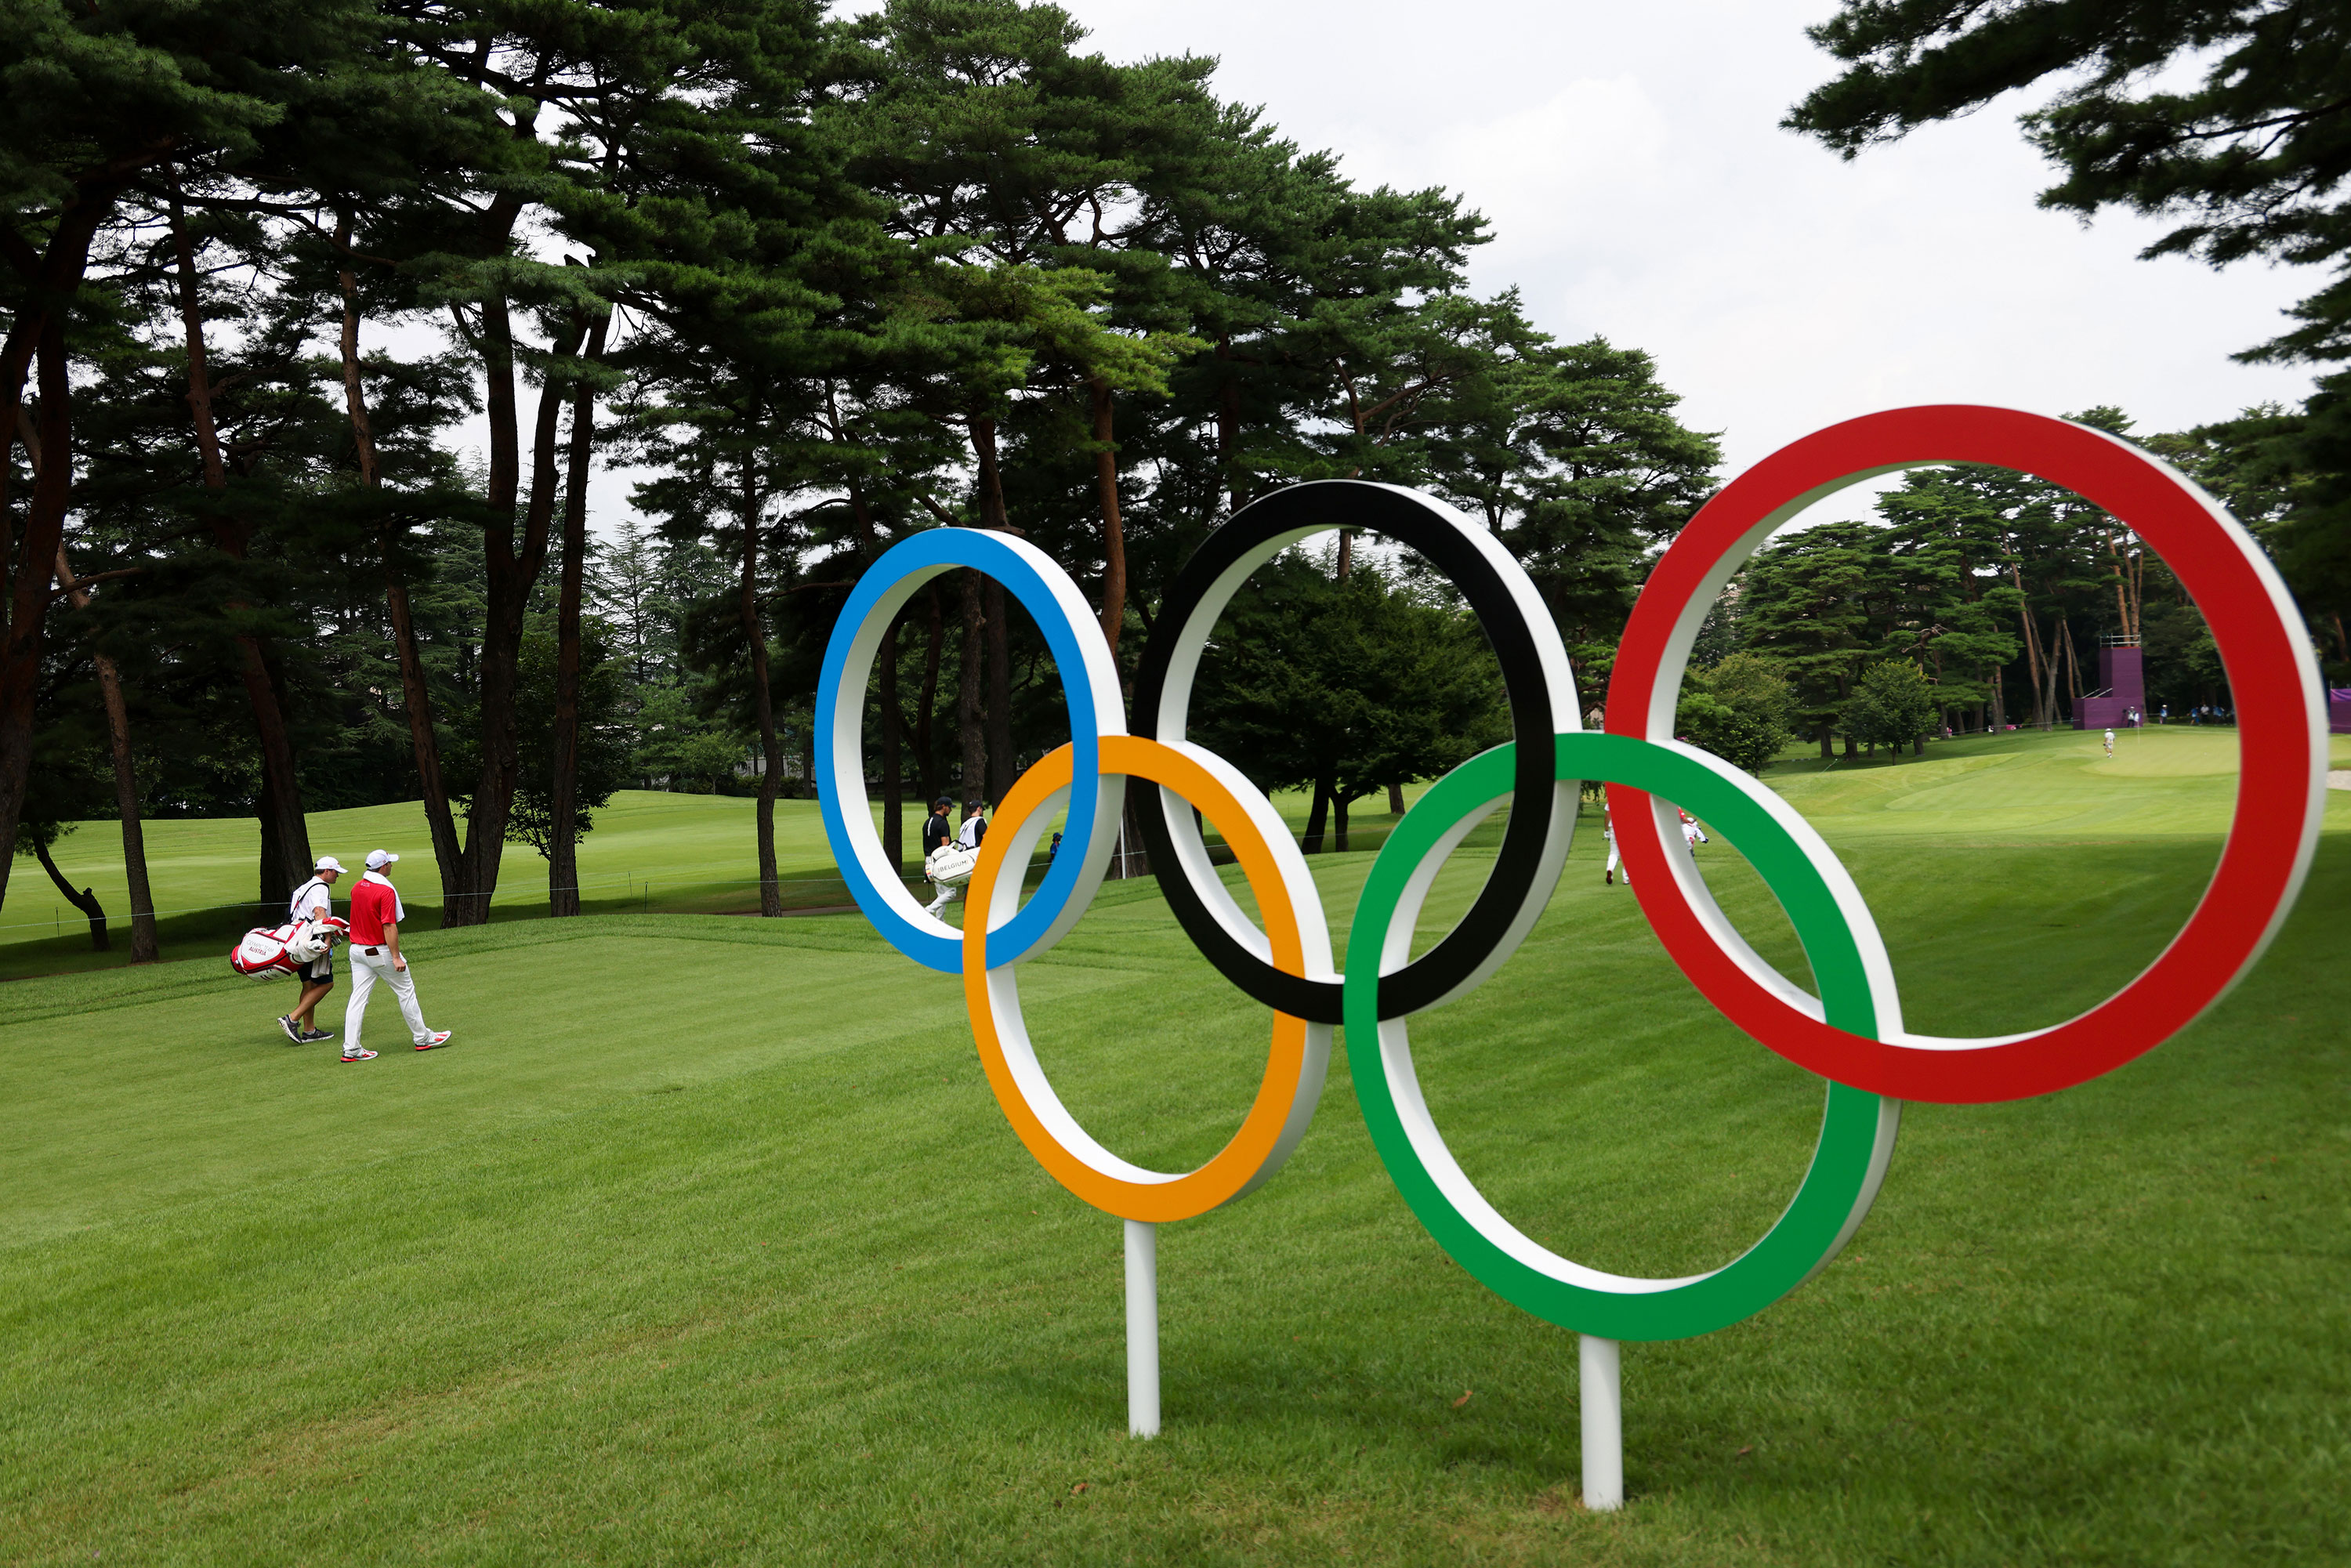 Australia's Sepp Straka and caddie Samuel Straka walk by Olympic rings on the 16th hole during the first round of the individual stroke play in Kawagoe, Japan, on July 29.